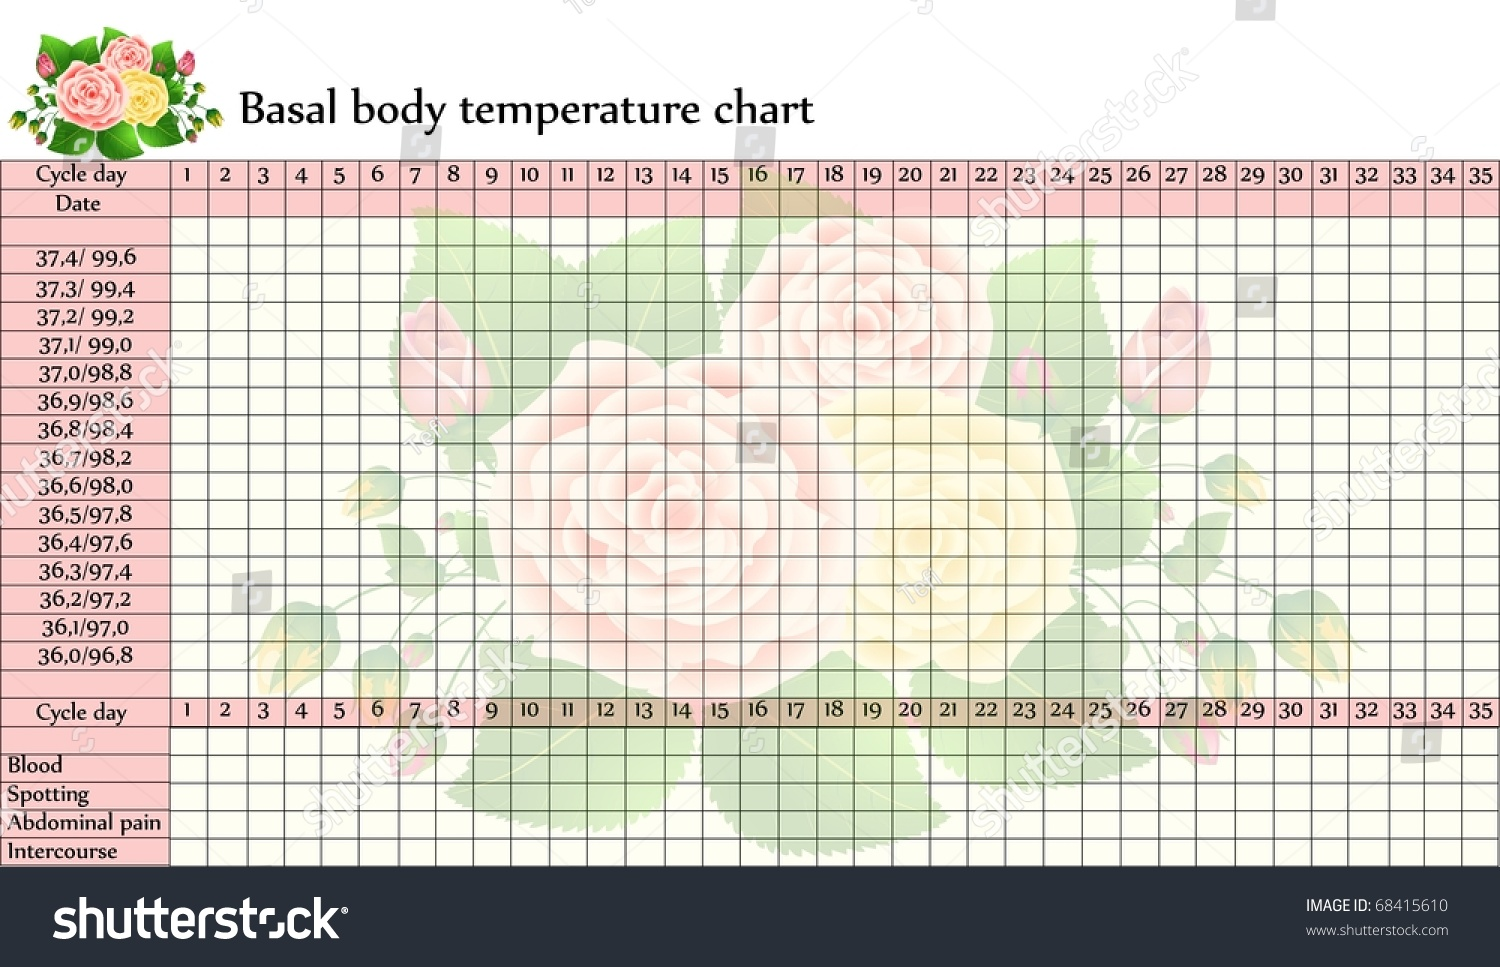 Vector Basal Body Temperature Chart Celsius Vector 68415610 – Celsius to Fahrenheit Charts